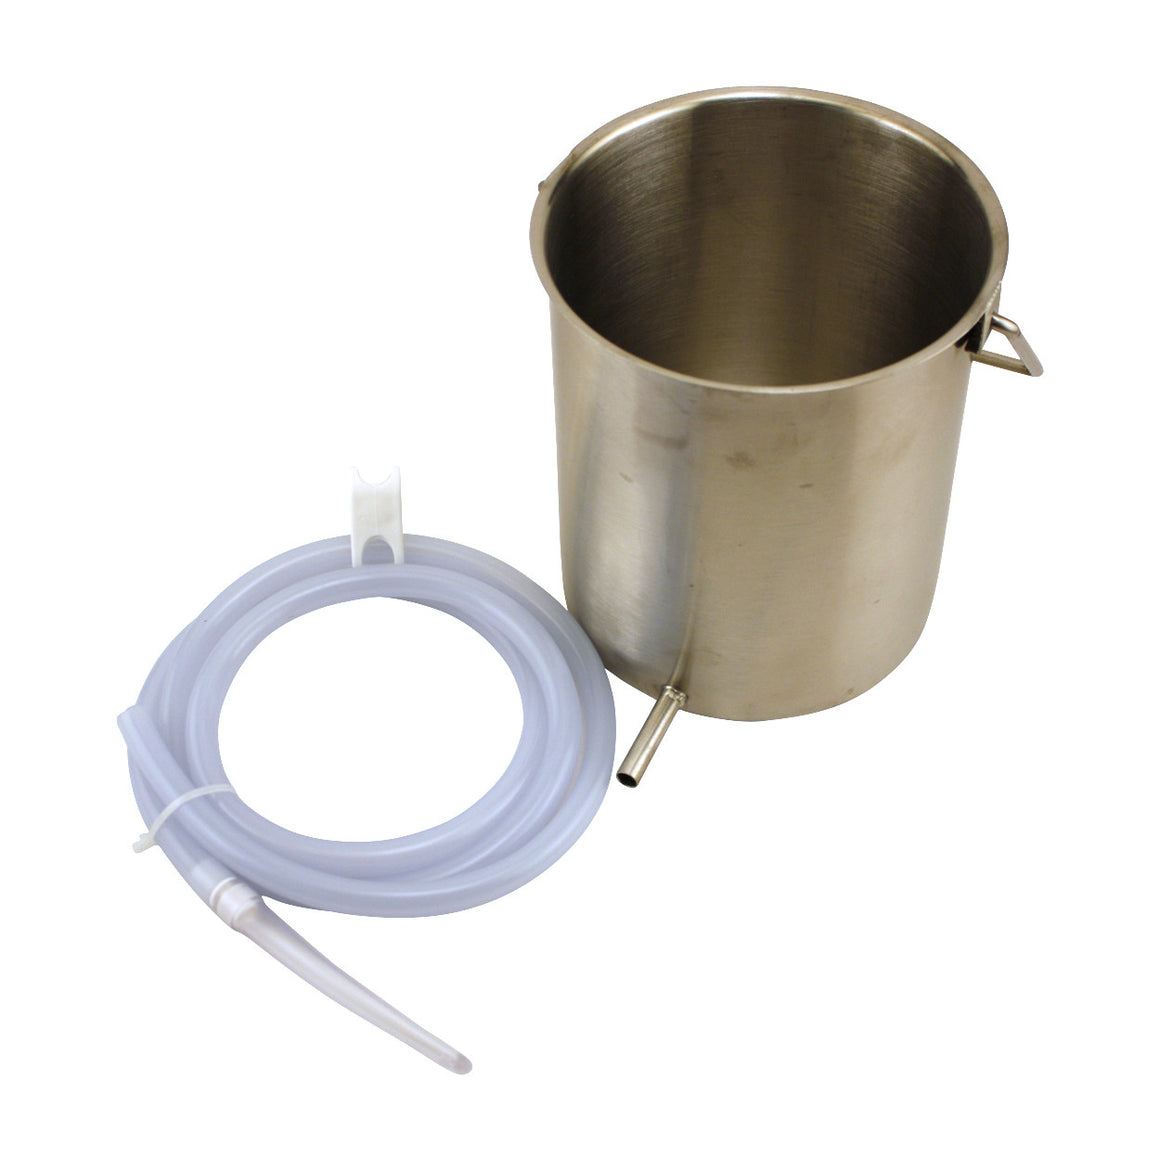 Stainless Steel Enema Bucket Kit - 2 Quart Bucket